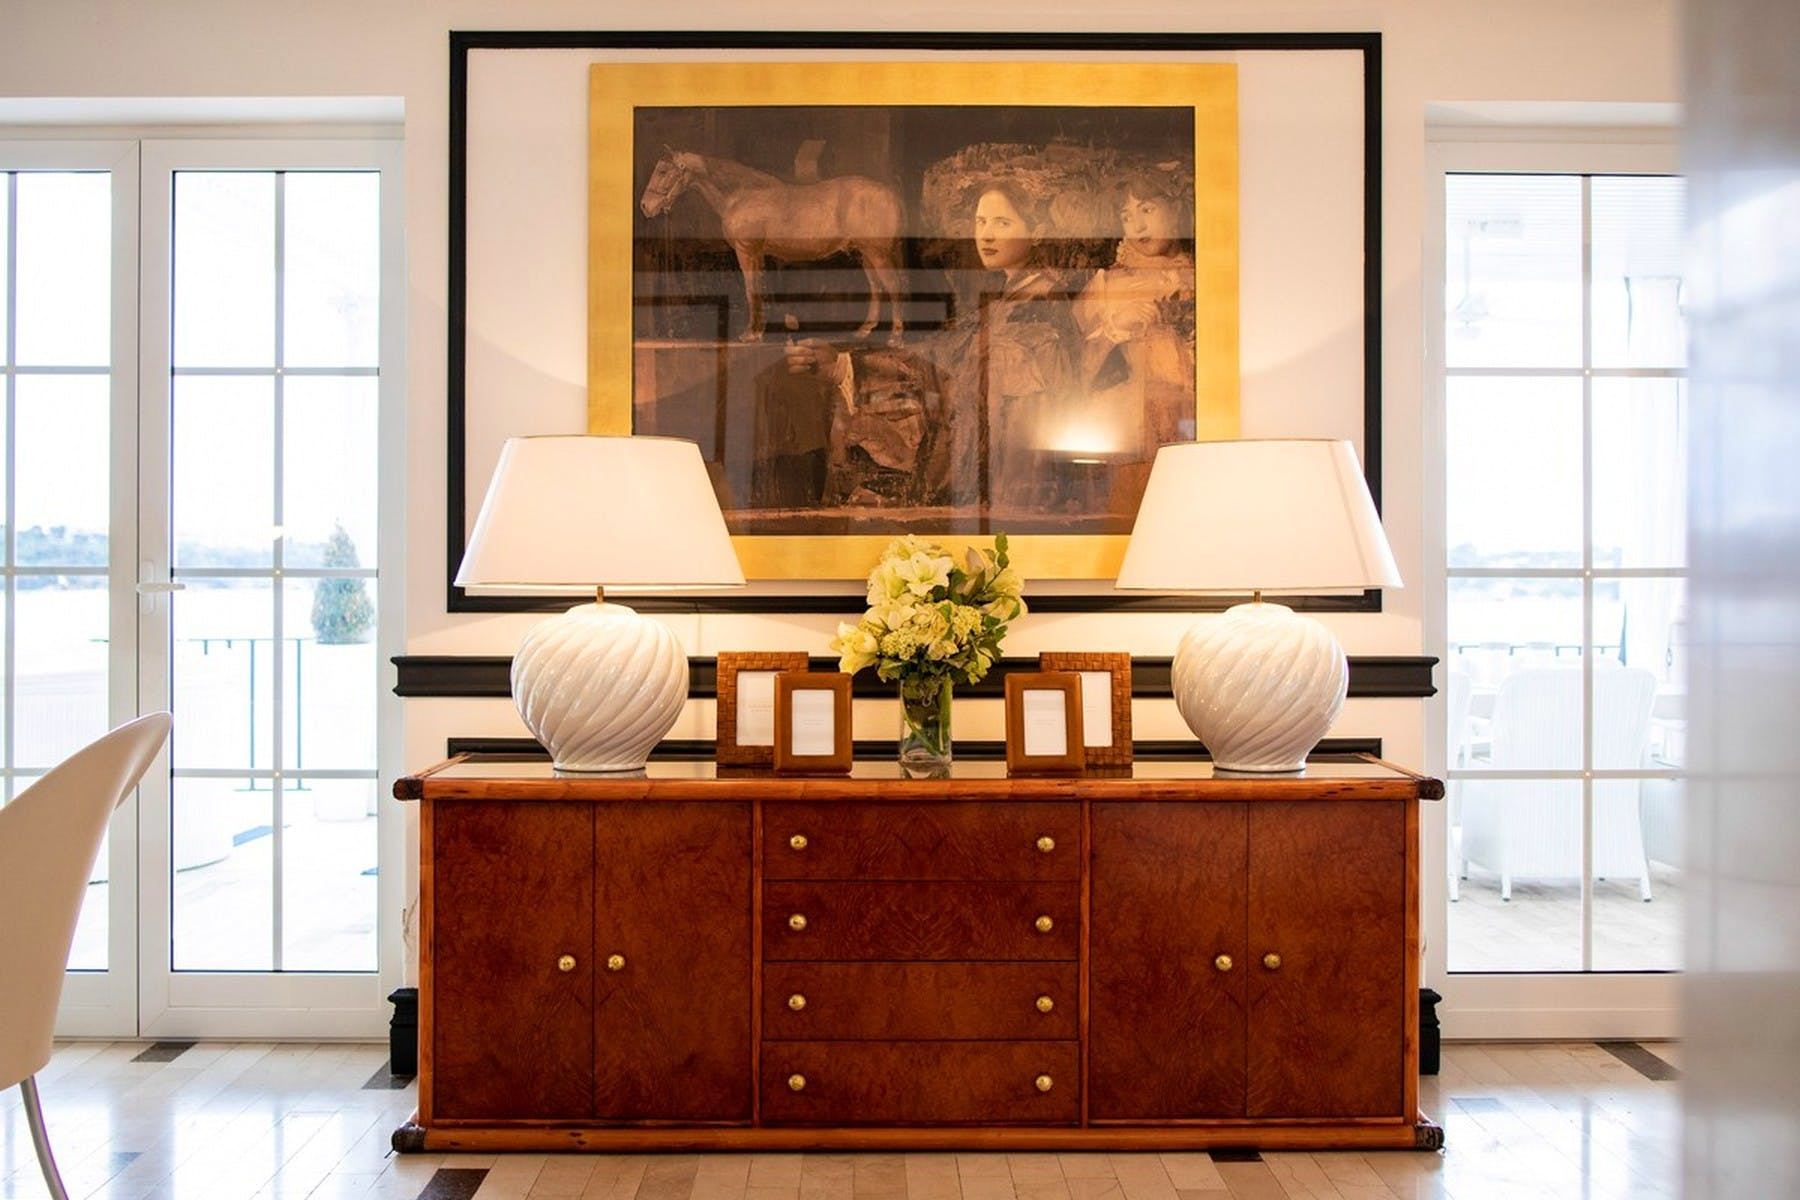 High-quality, antique pieces of furniture